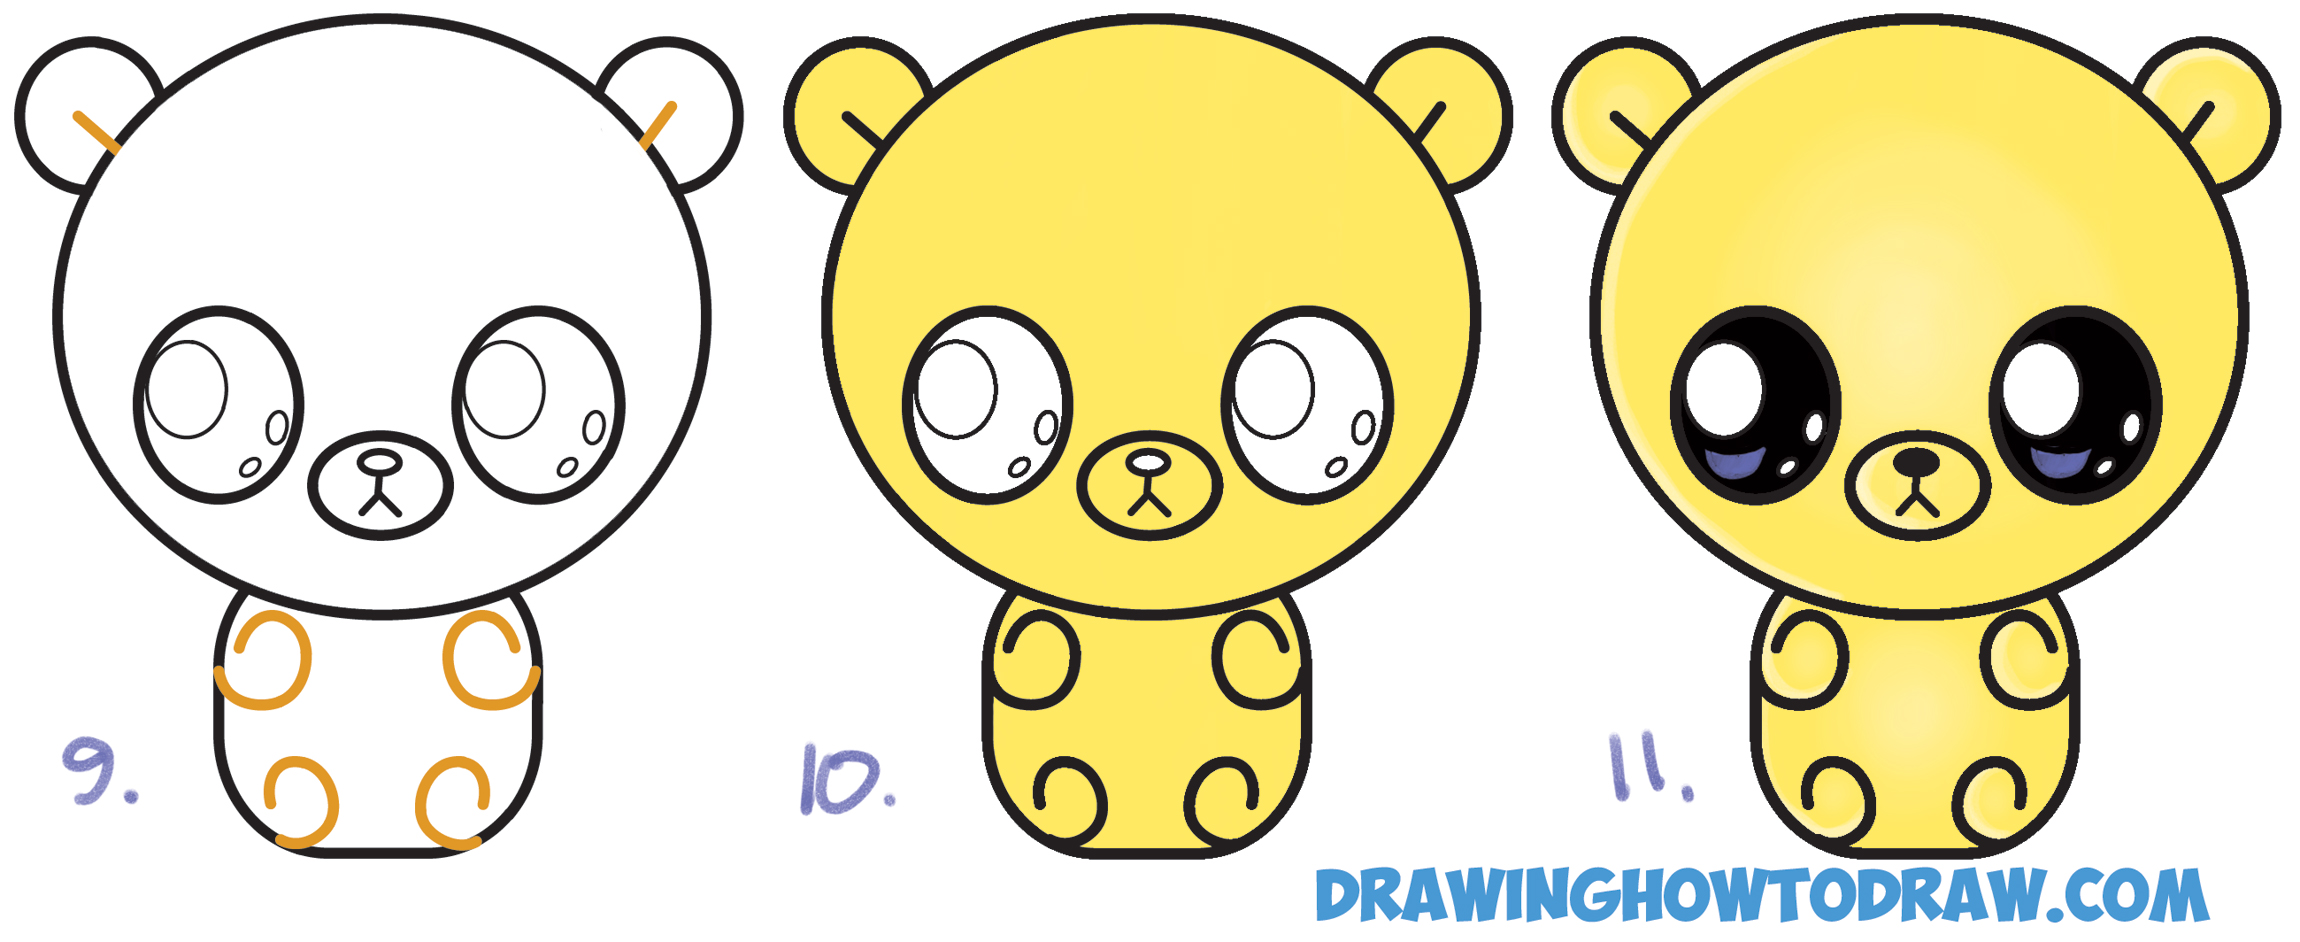 Learn How to Draw a Cute Chibi / Kawaii / Cartoon Gummy Bear Simple Steps Drawing Lesson for Beginners and Children